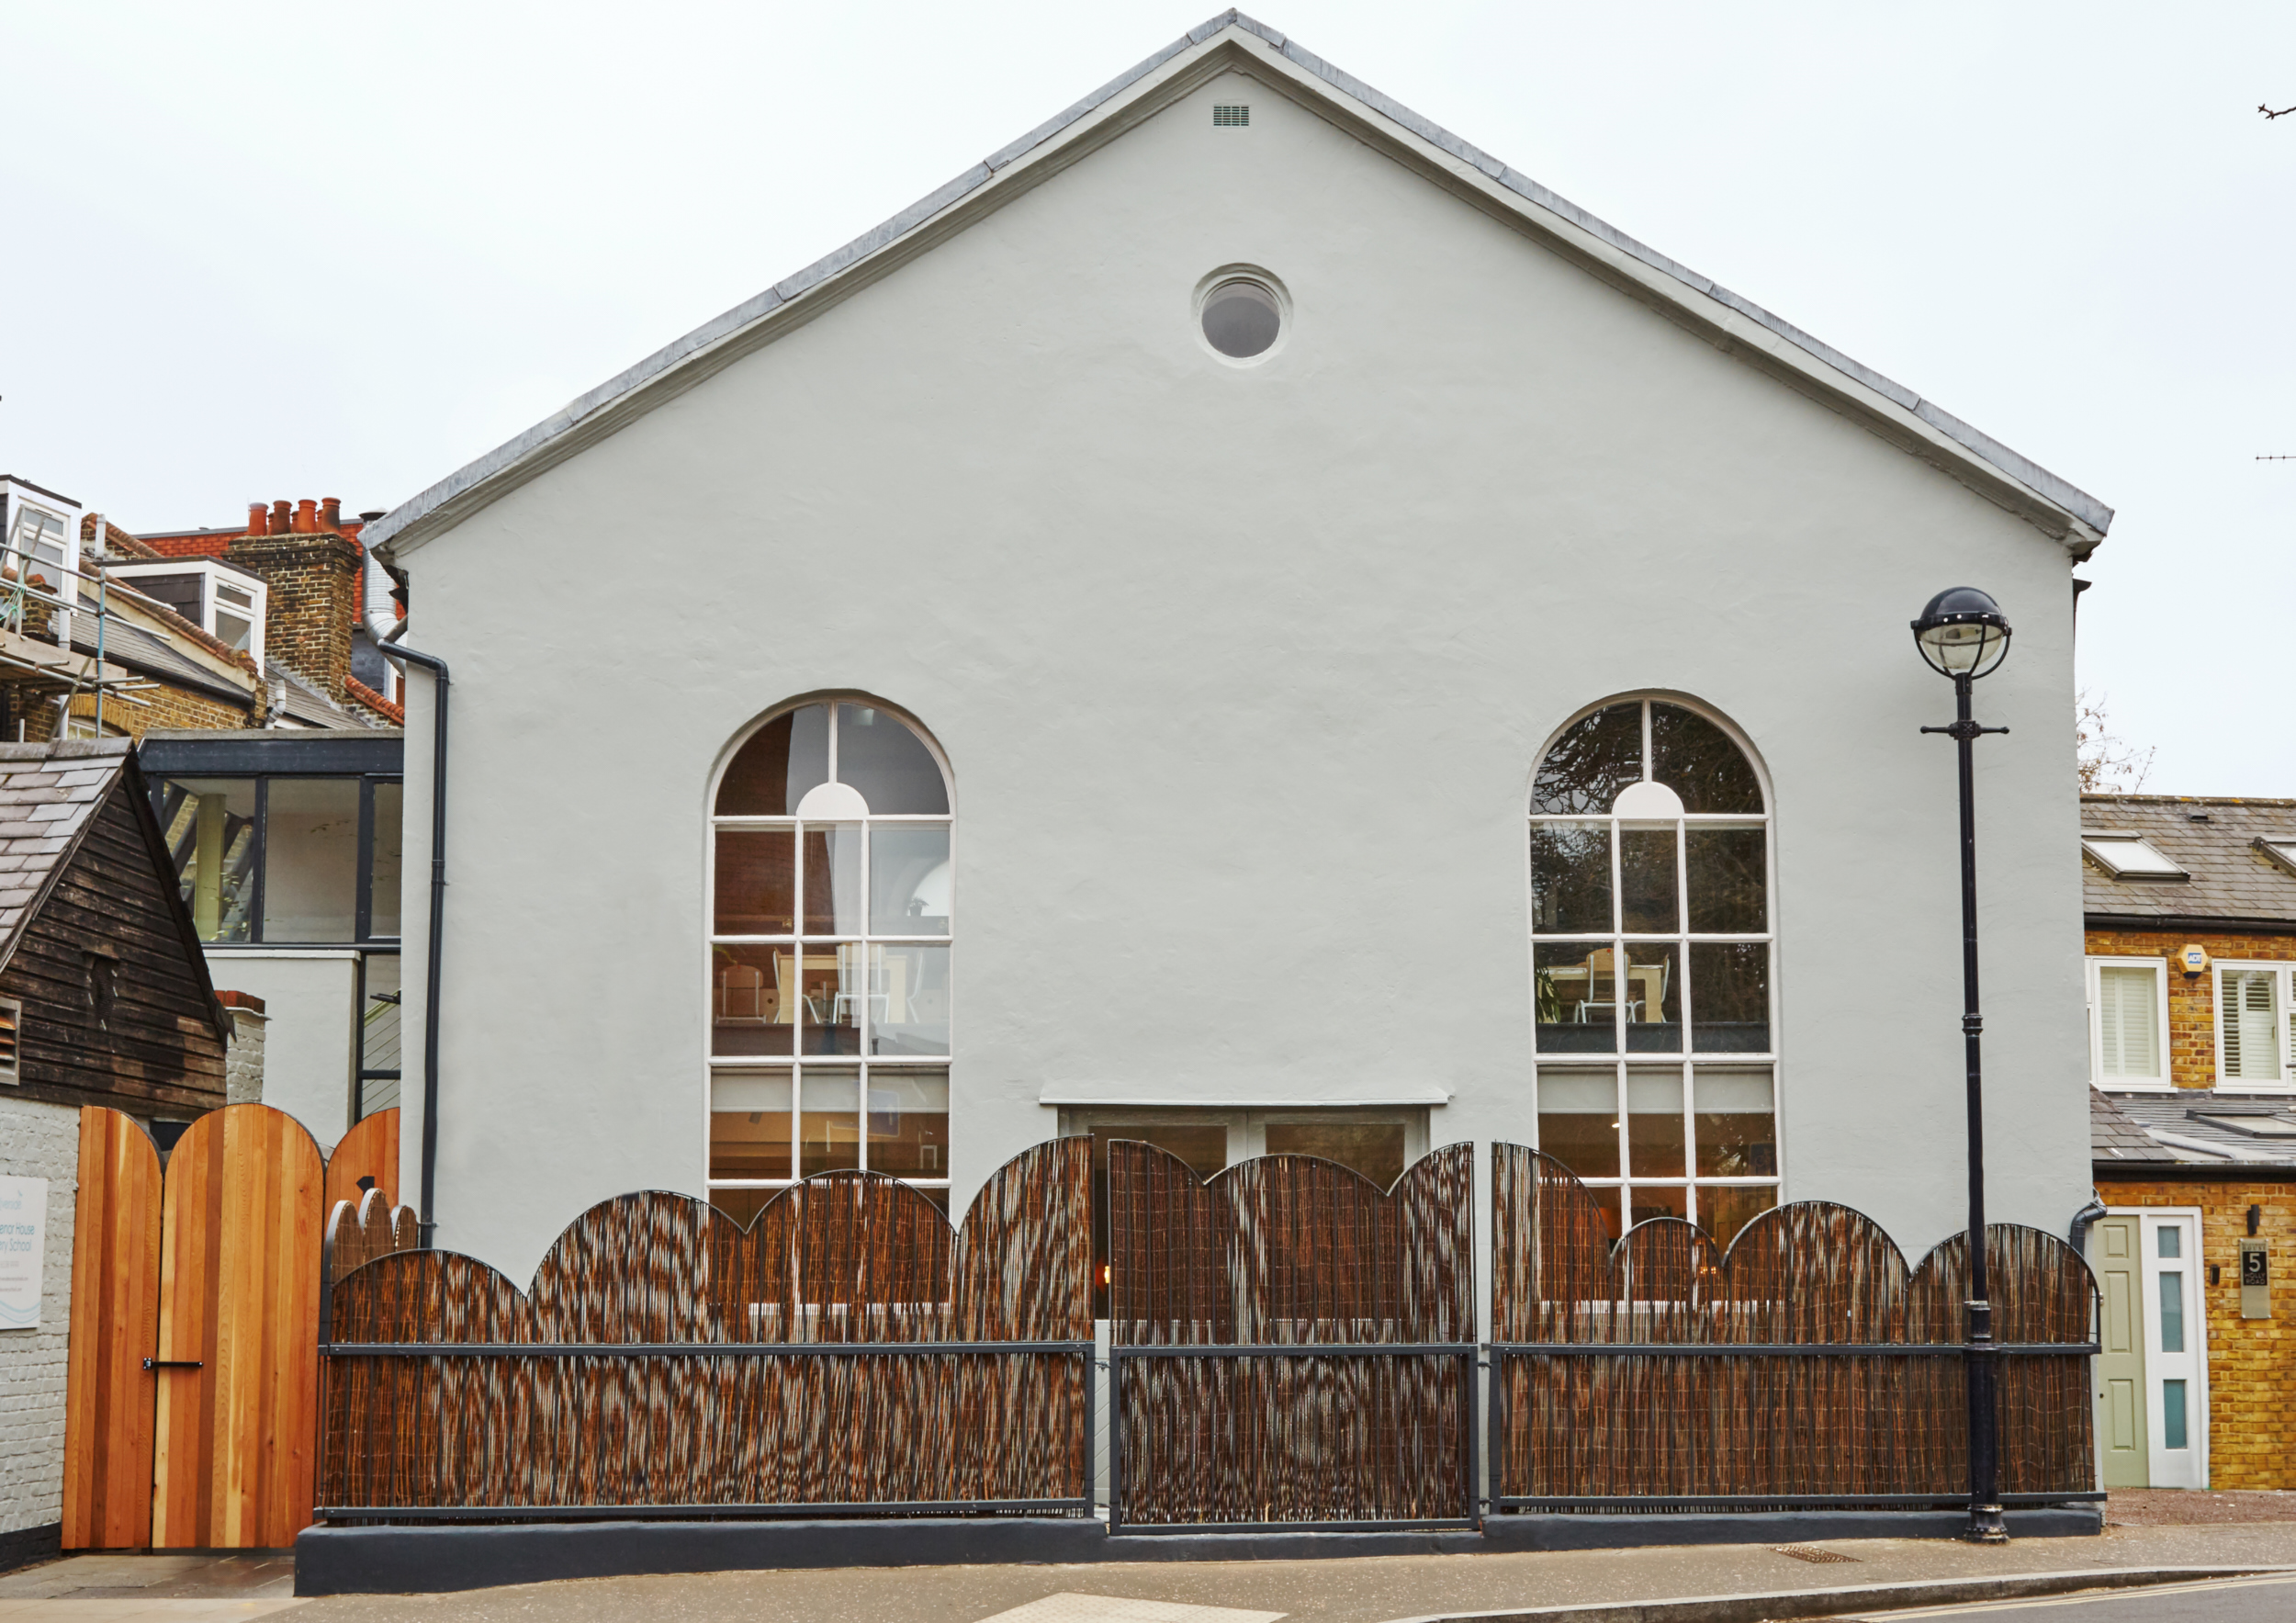 The exterior of the nursery. It's a tall off-white building with a large pointed roof and two arched windows and arched fencing to reflect the window shape